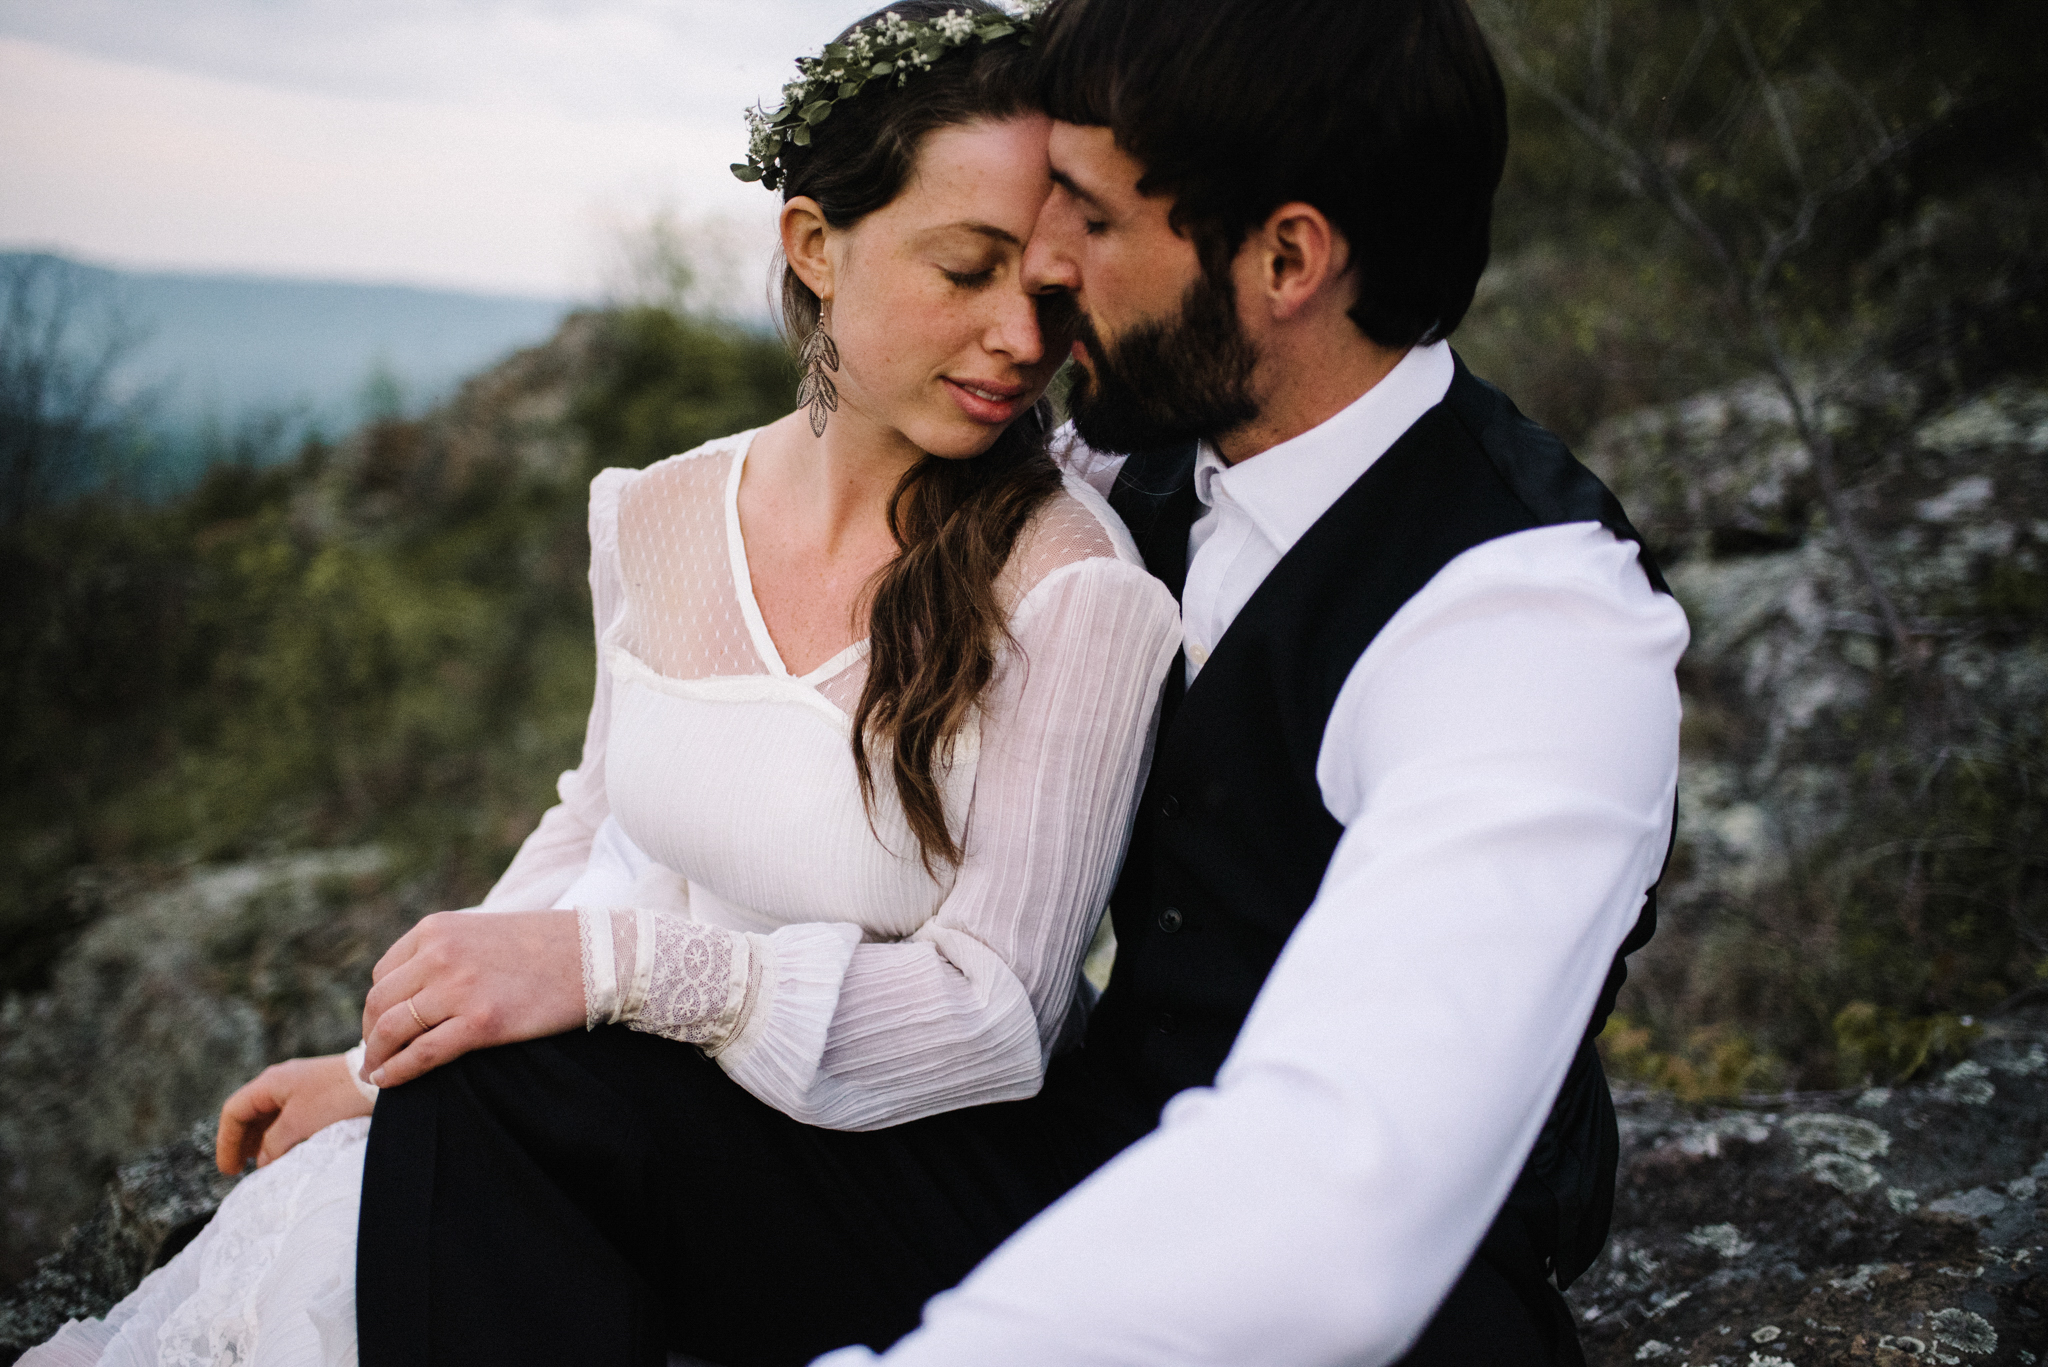 Shenandoah National Park Elopement Wedding Photographer and Planner_184.jpg